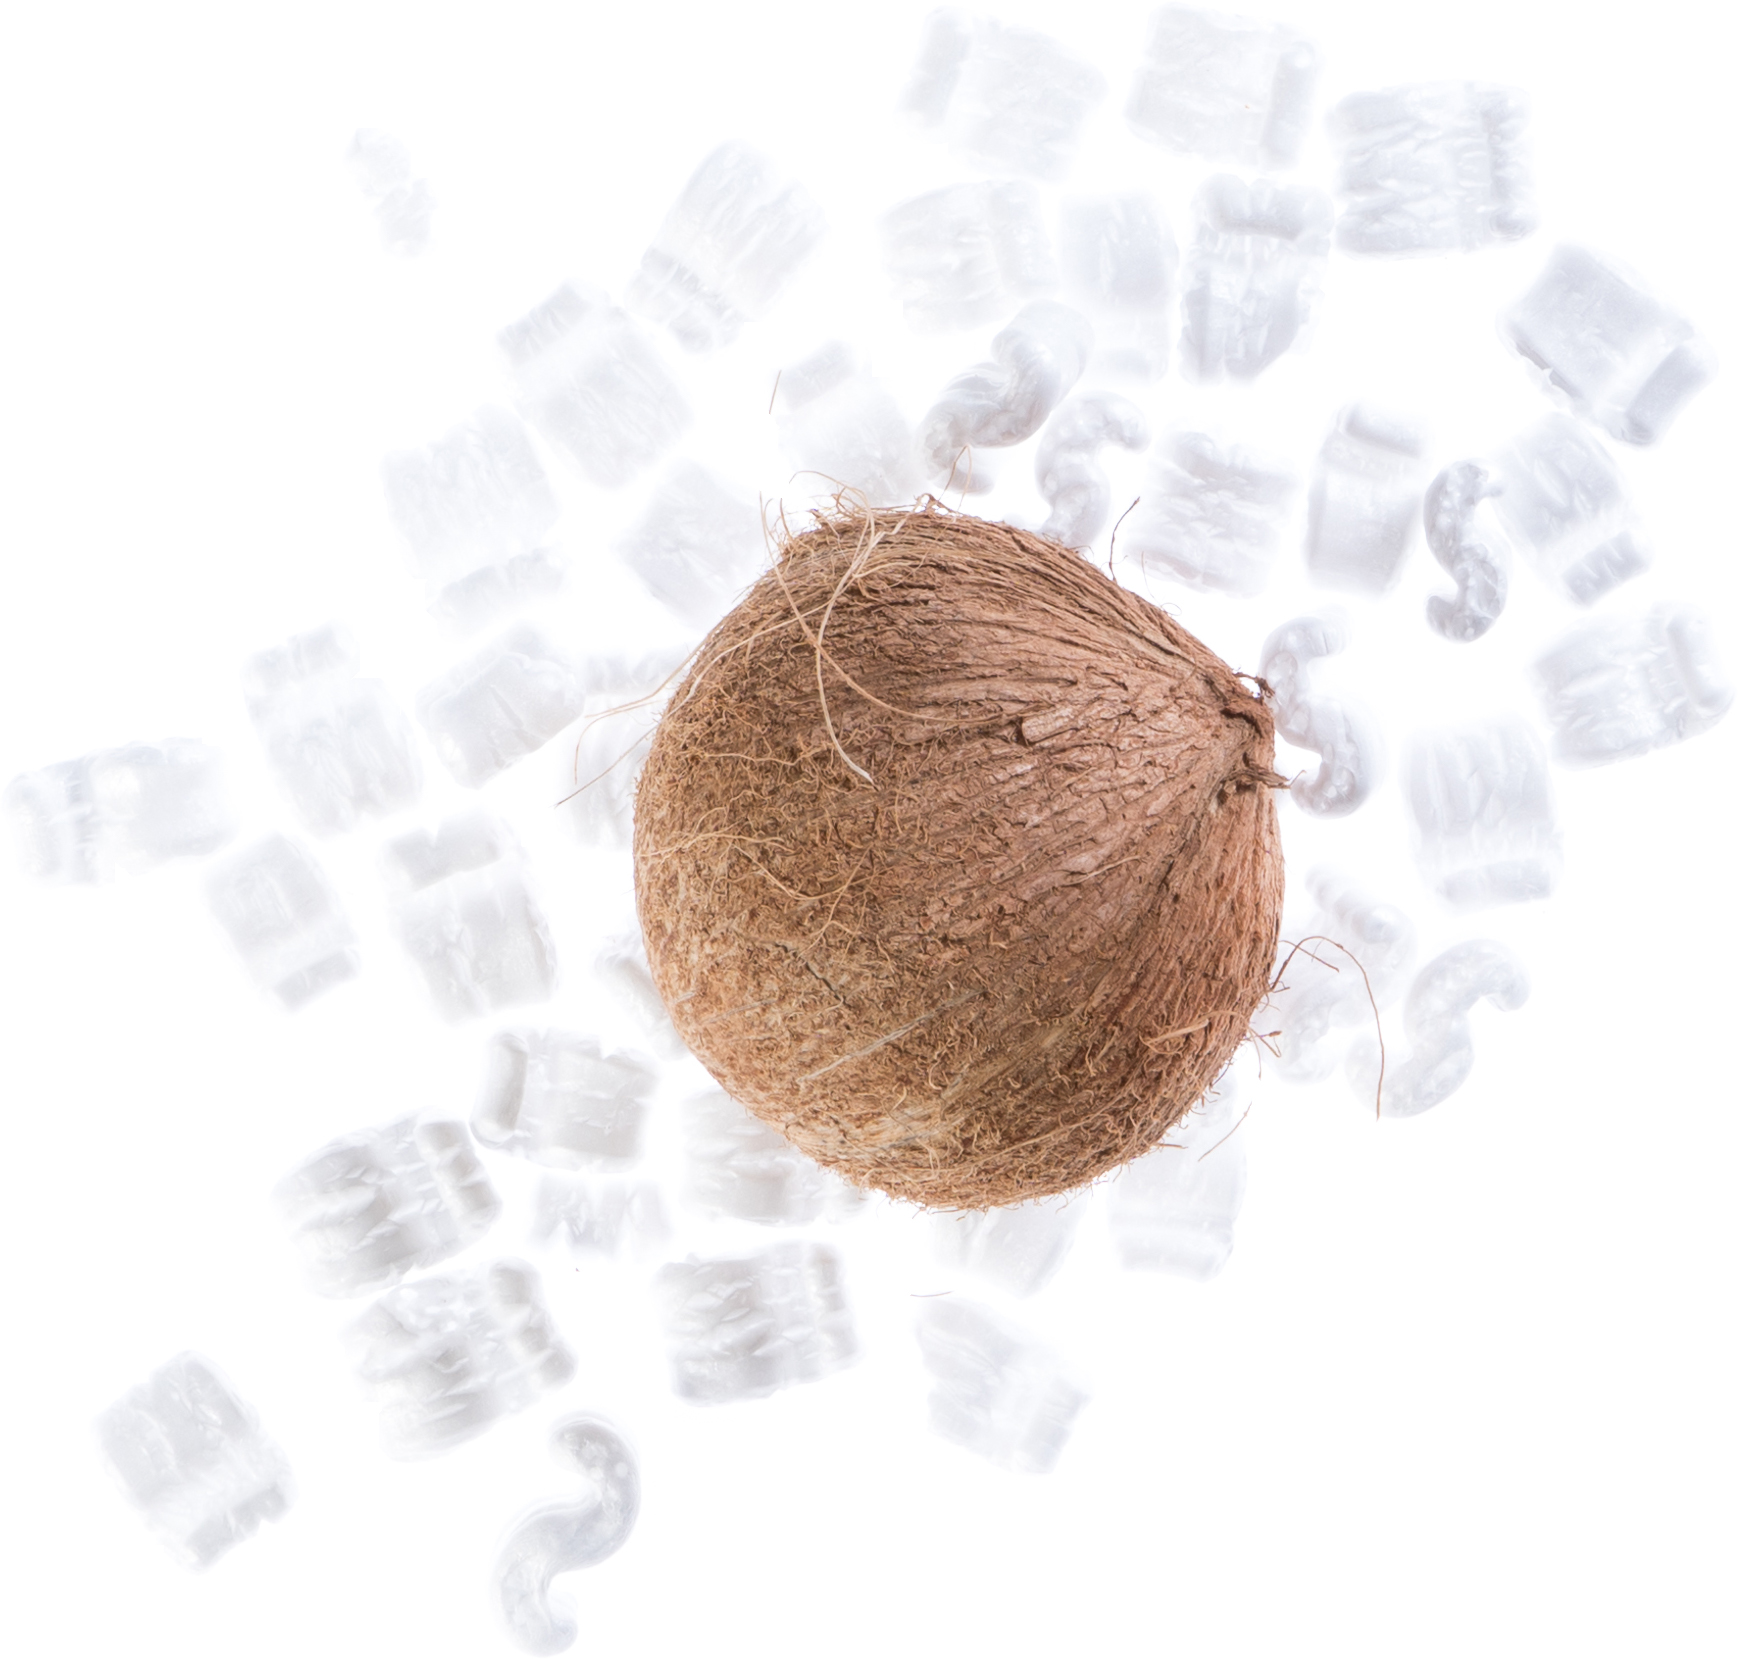 A coconut and shipping materials